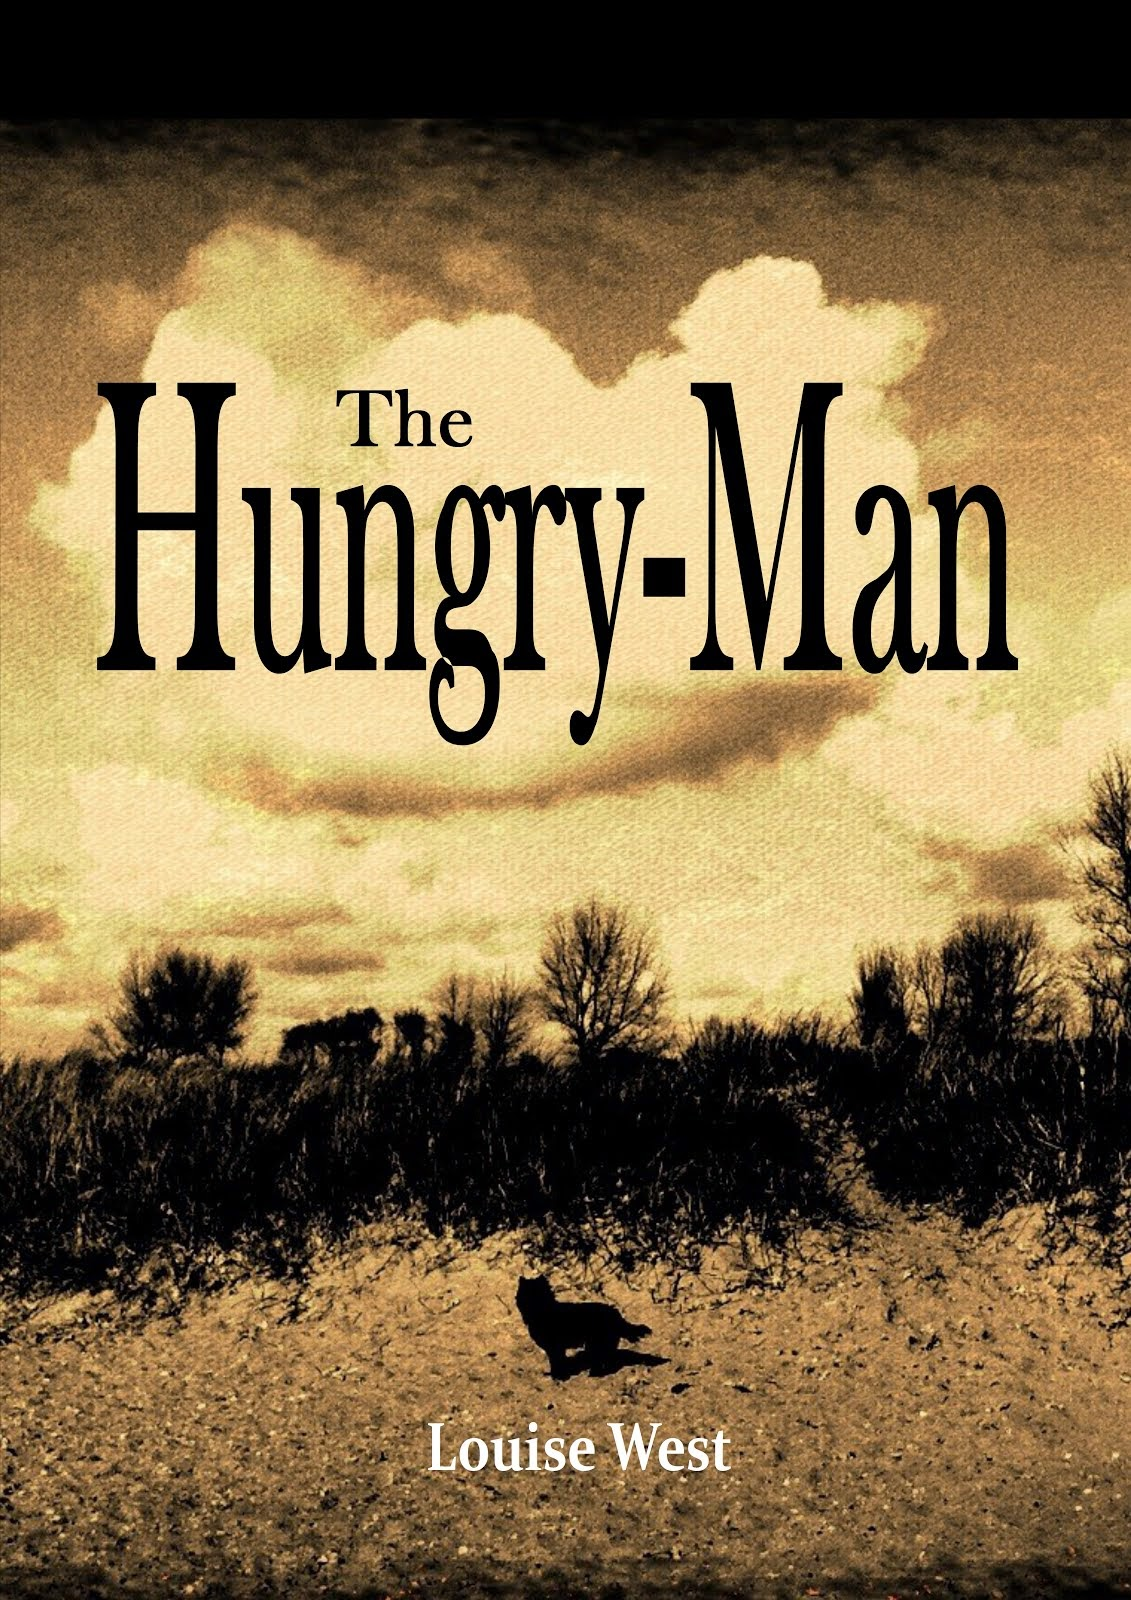 http://www.amazon.co.uk/The-Hungry-Man-Louise-West/dp/148234727X/ref=sr_1_2?ie=UTF8&qid=1401736833&sr=8-2&keywords=strange+ideas+death+destiny+and+decisions